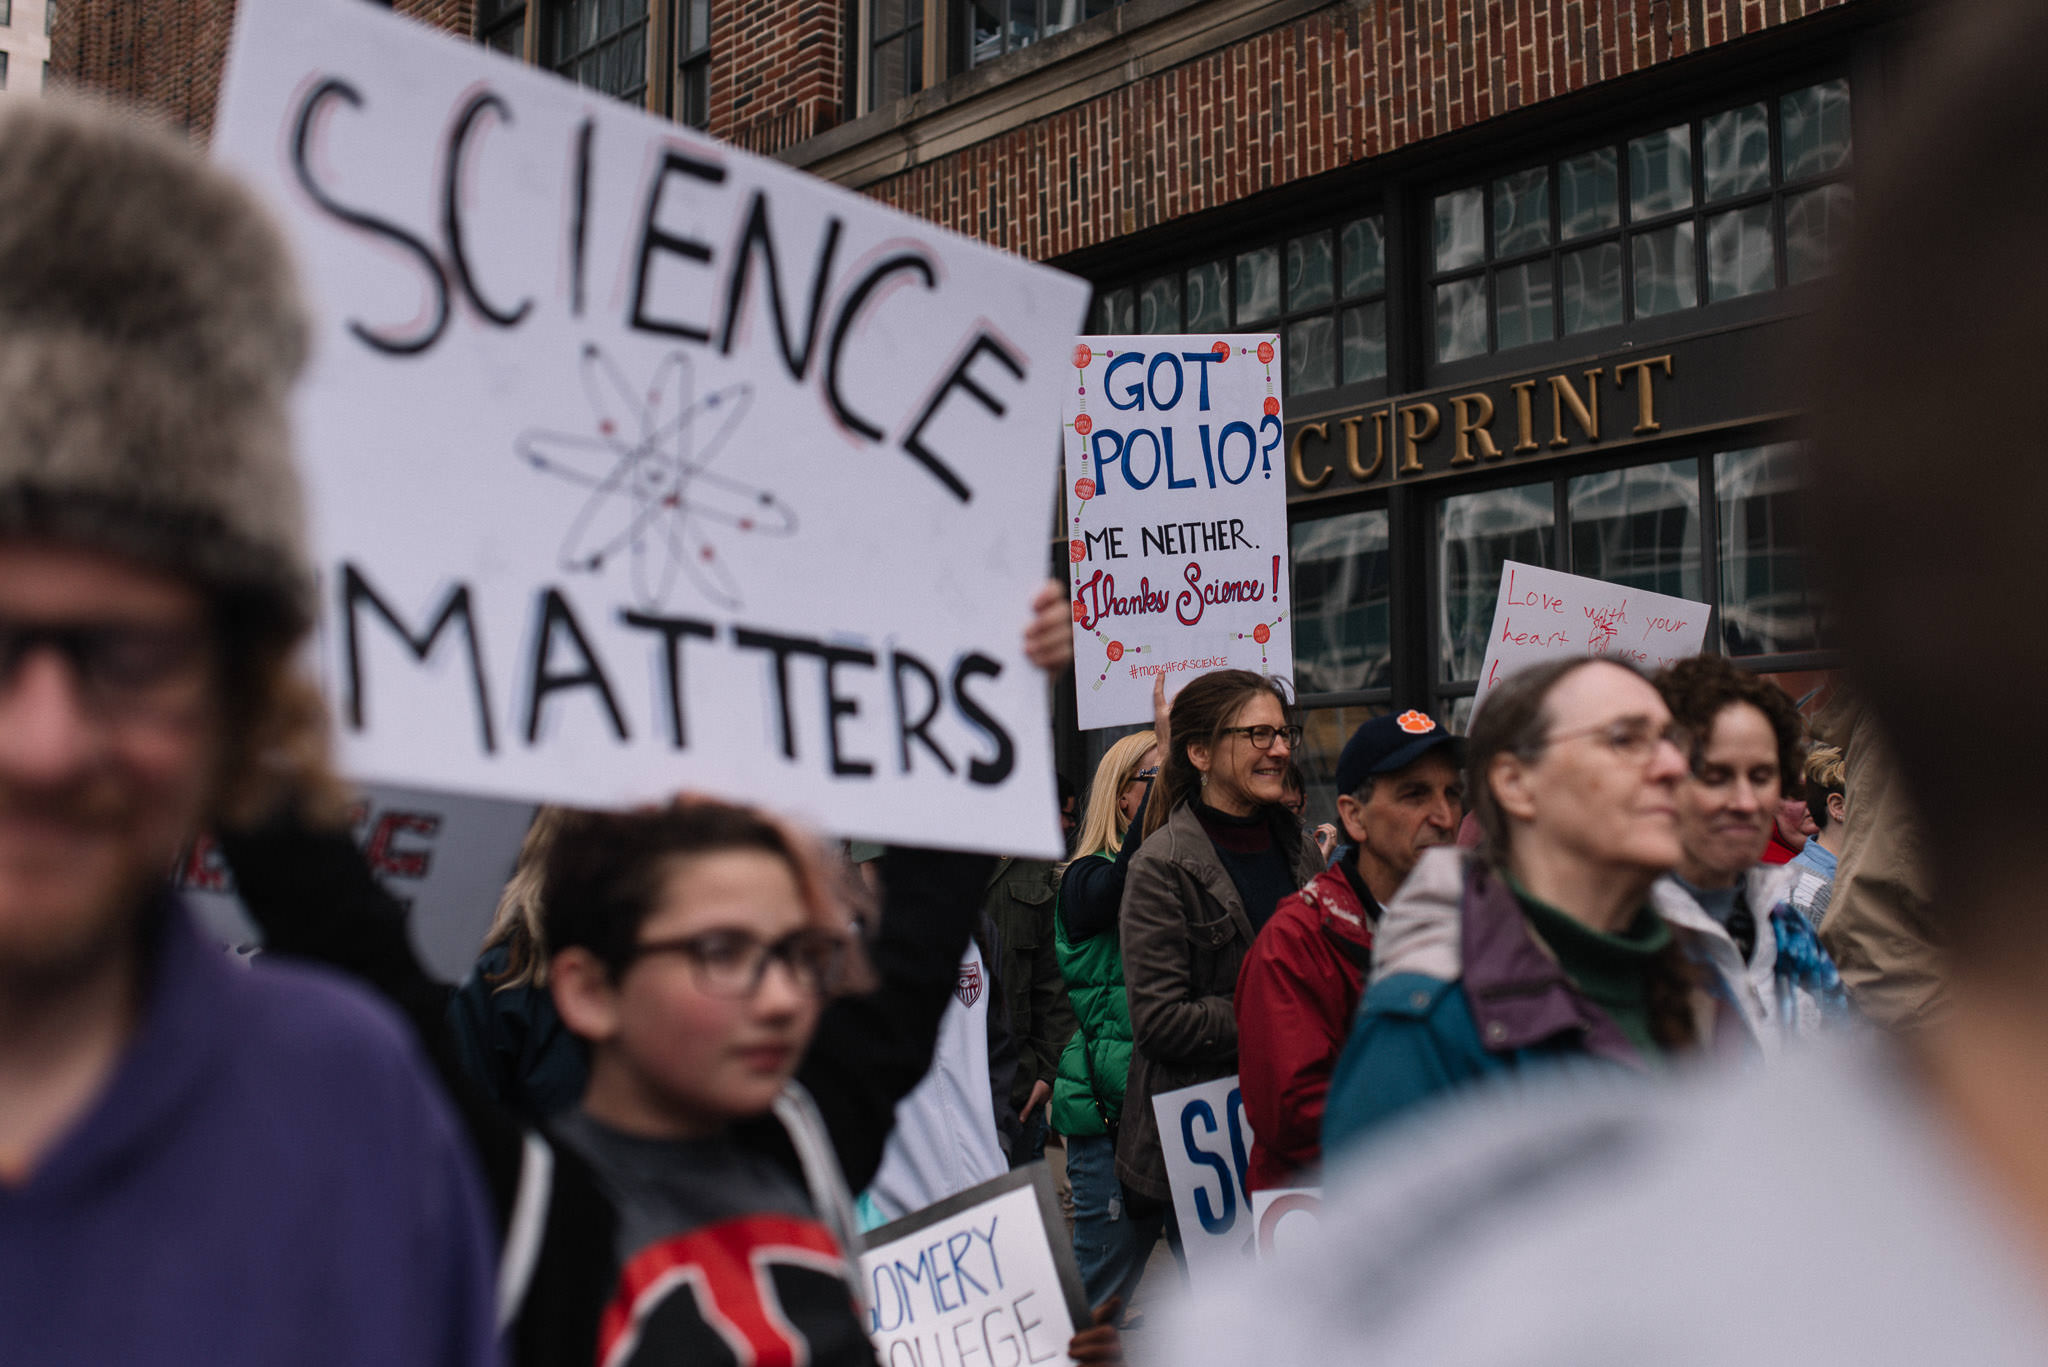 march-for-science-albany-ny-2017-012